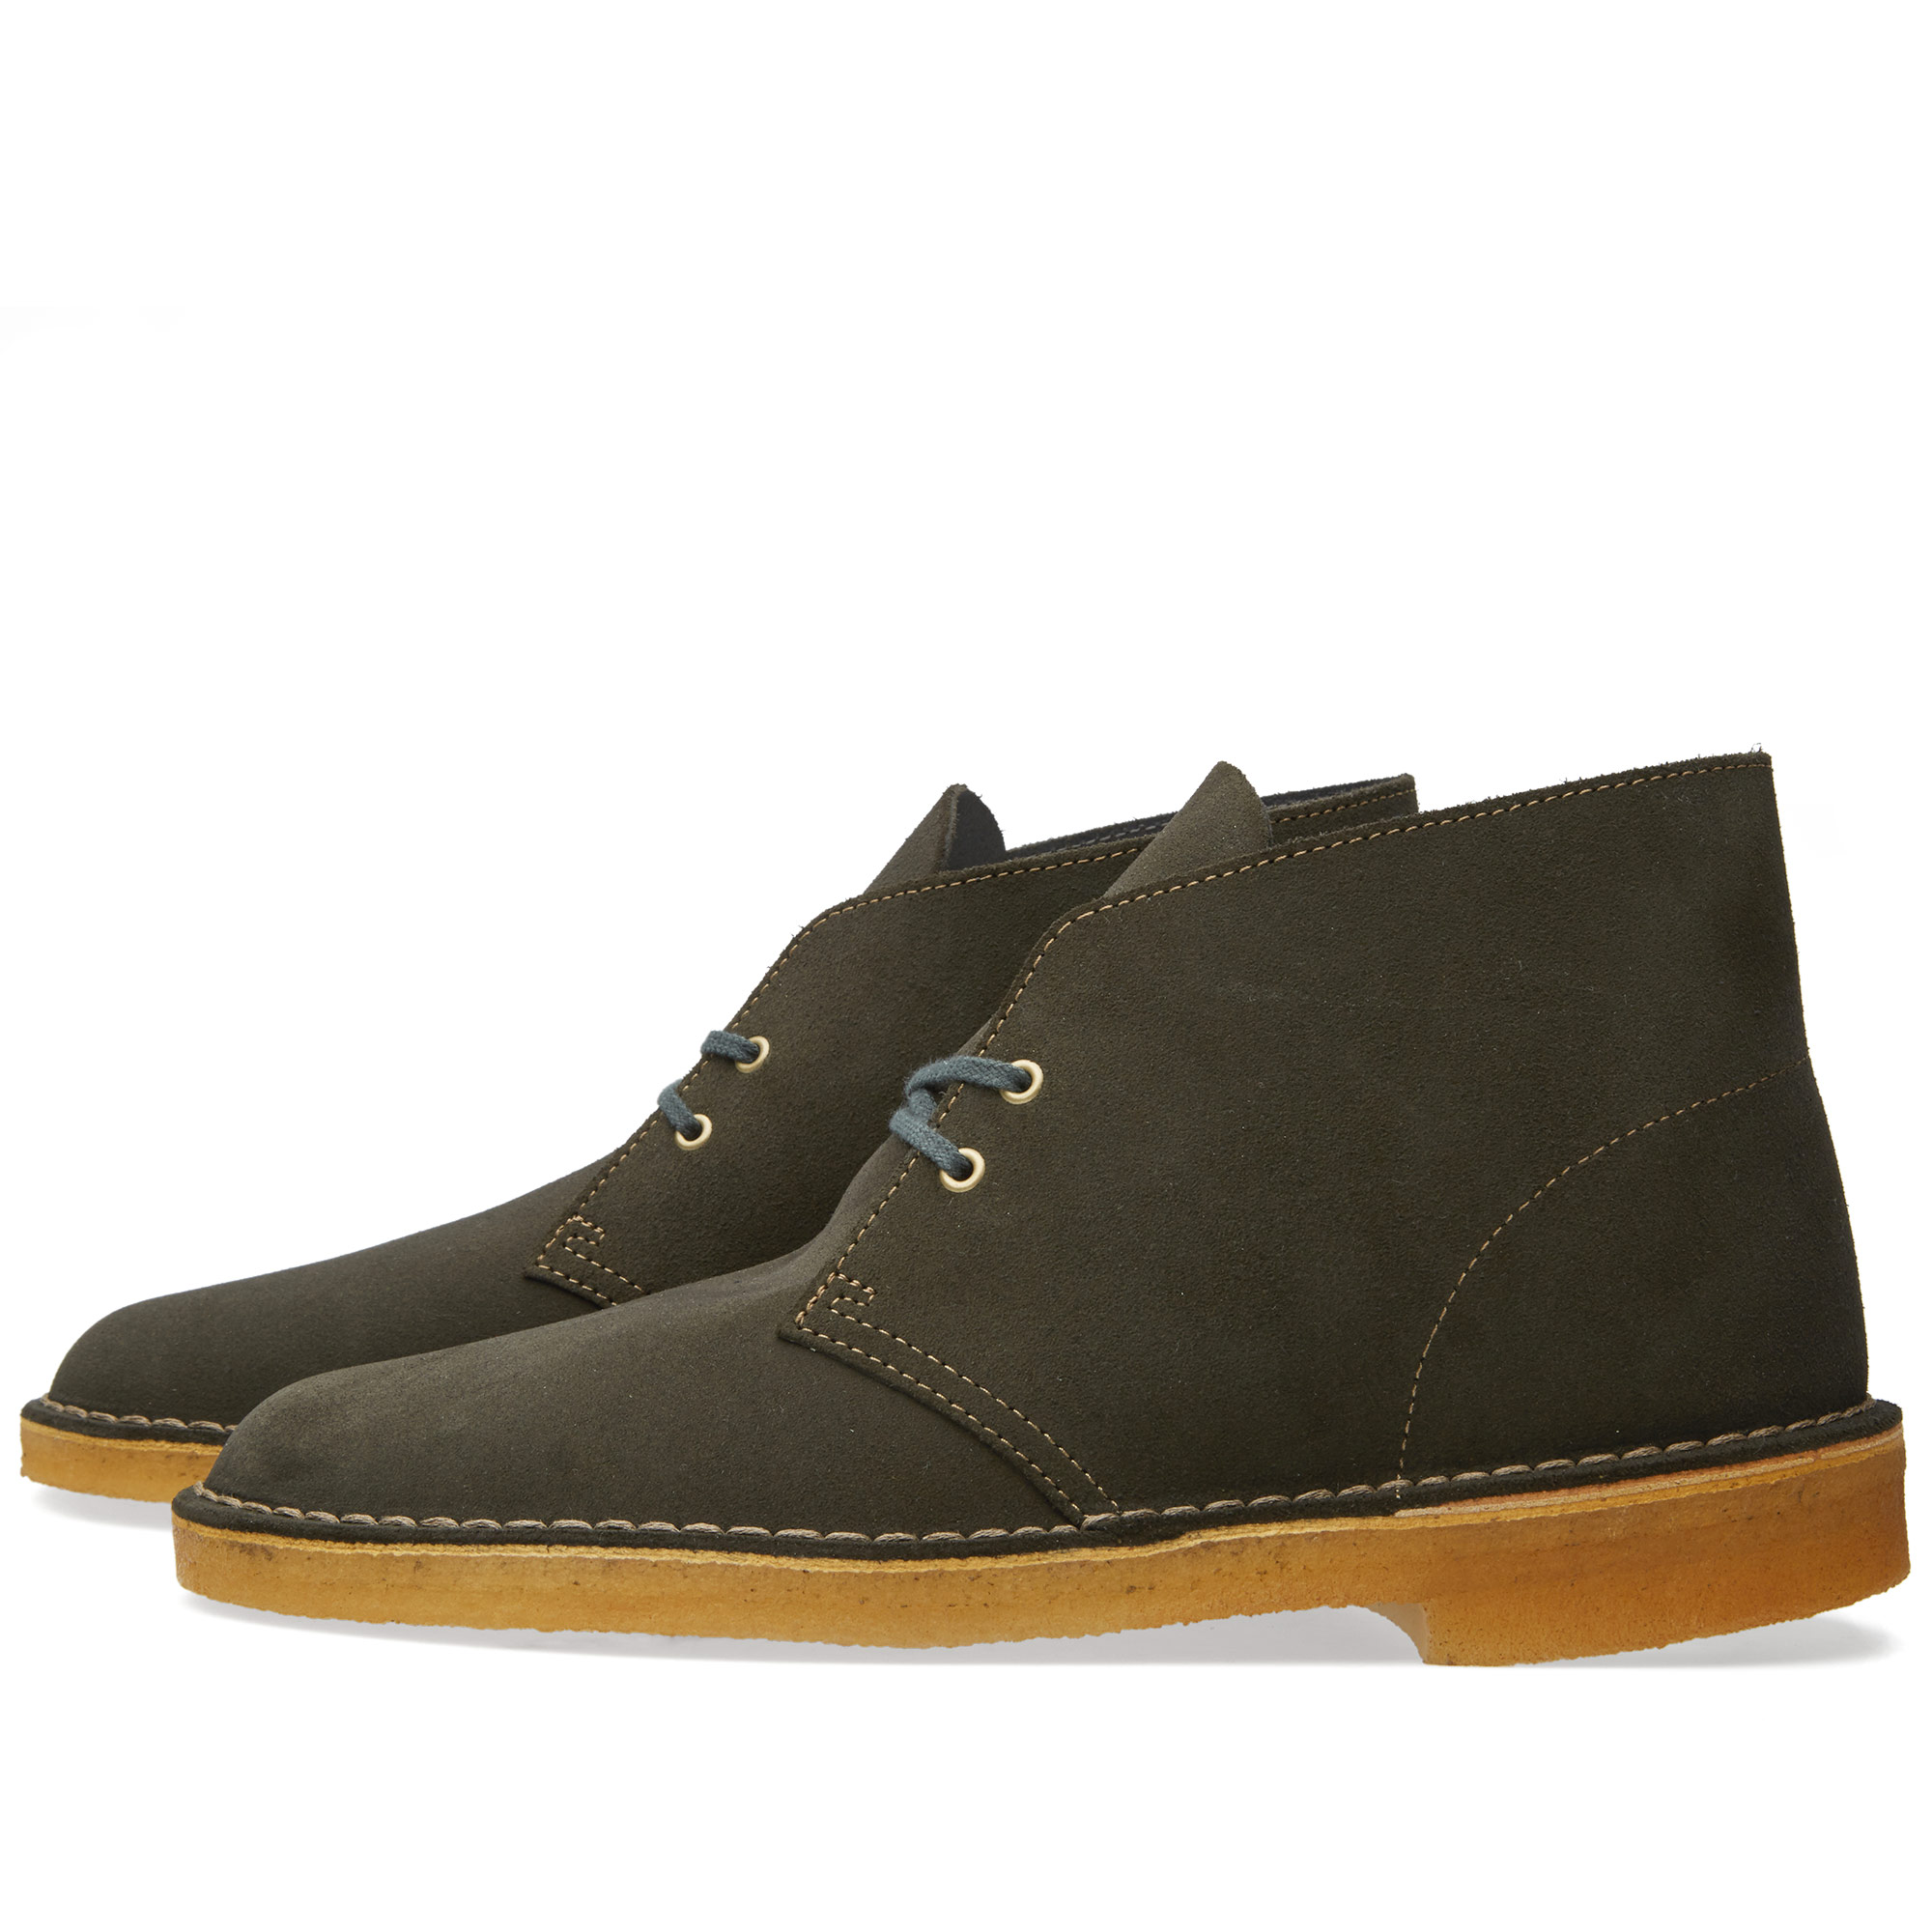 clarks originals desert boot loden green. Black Bedroom Furniture Sets. Home Design Ideas